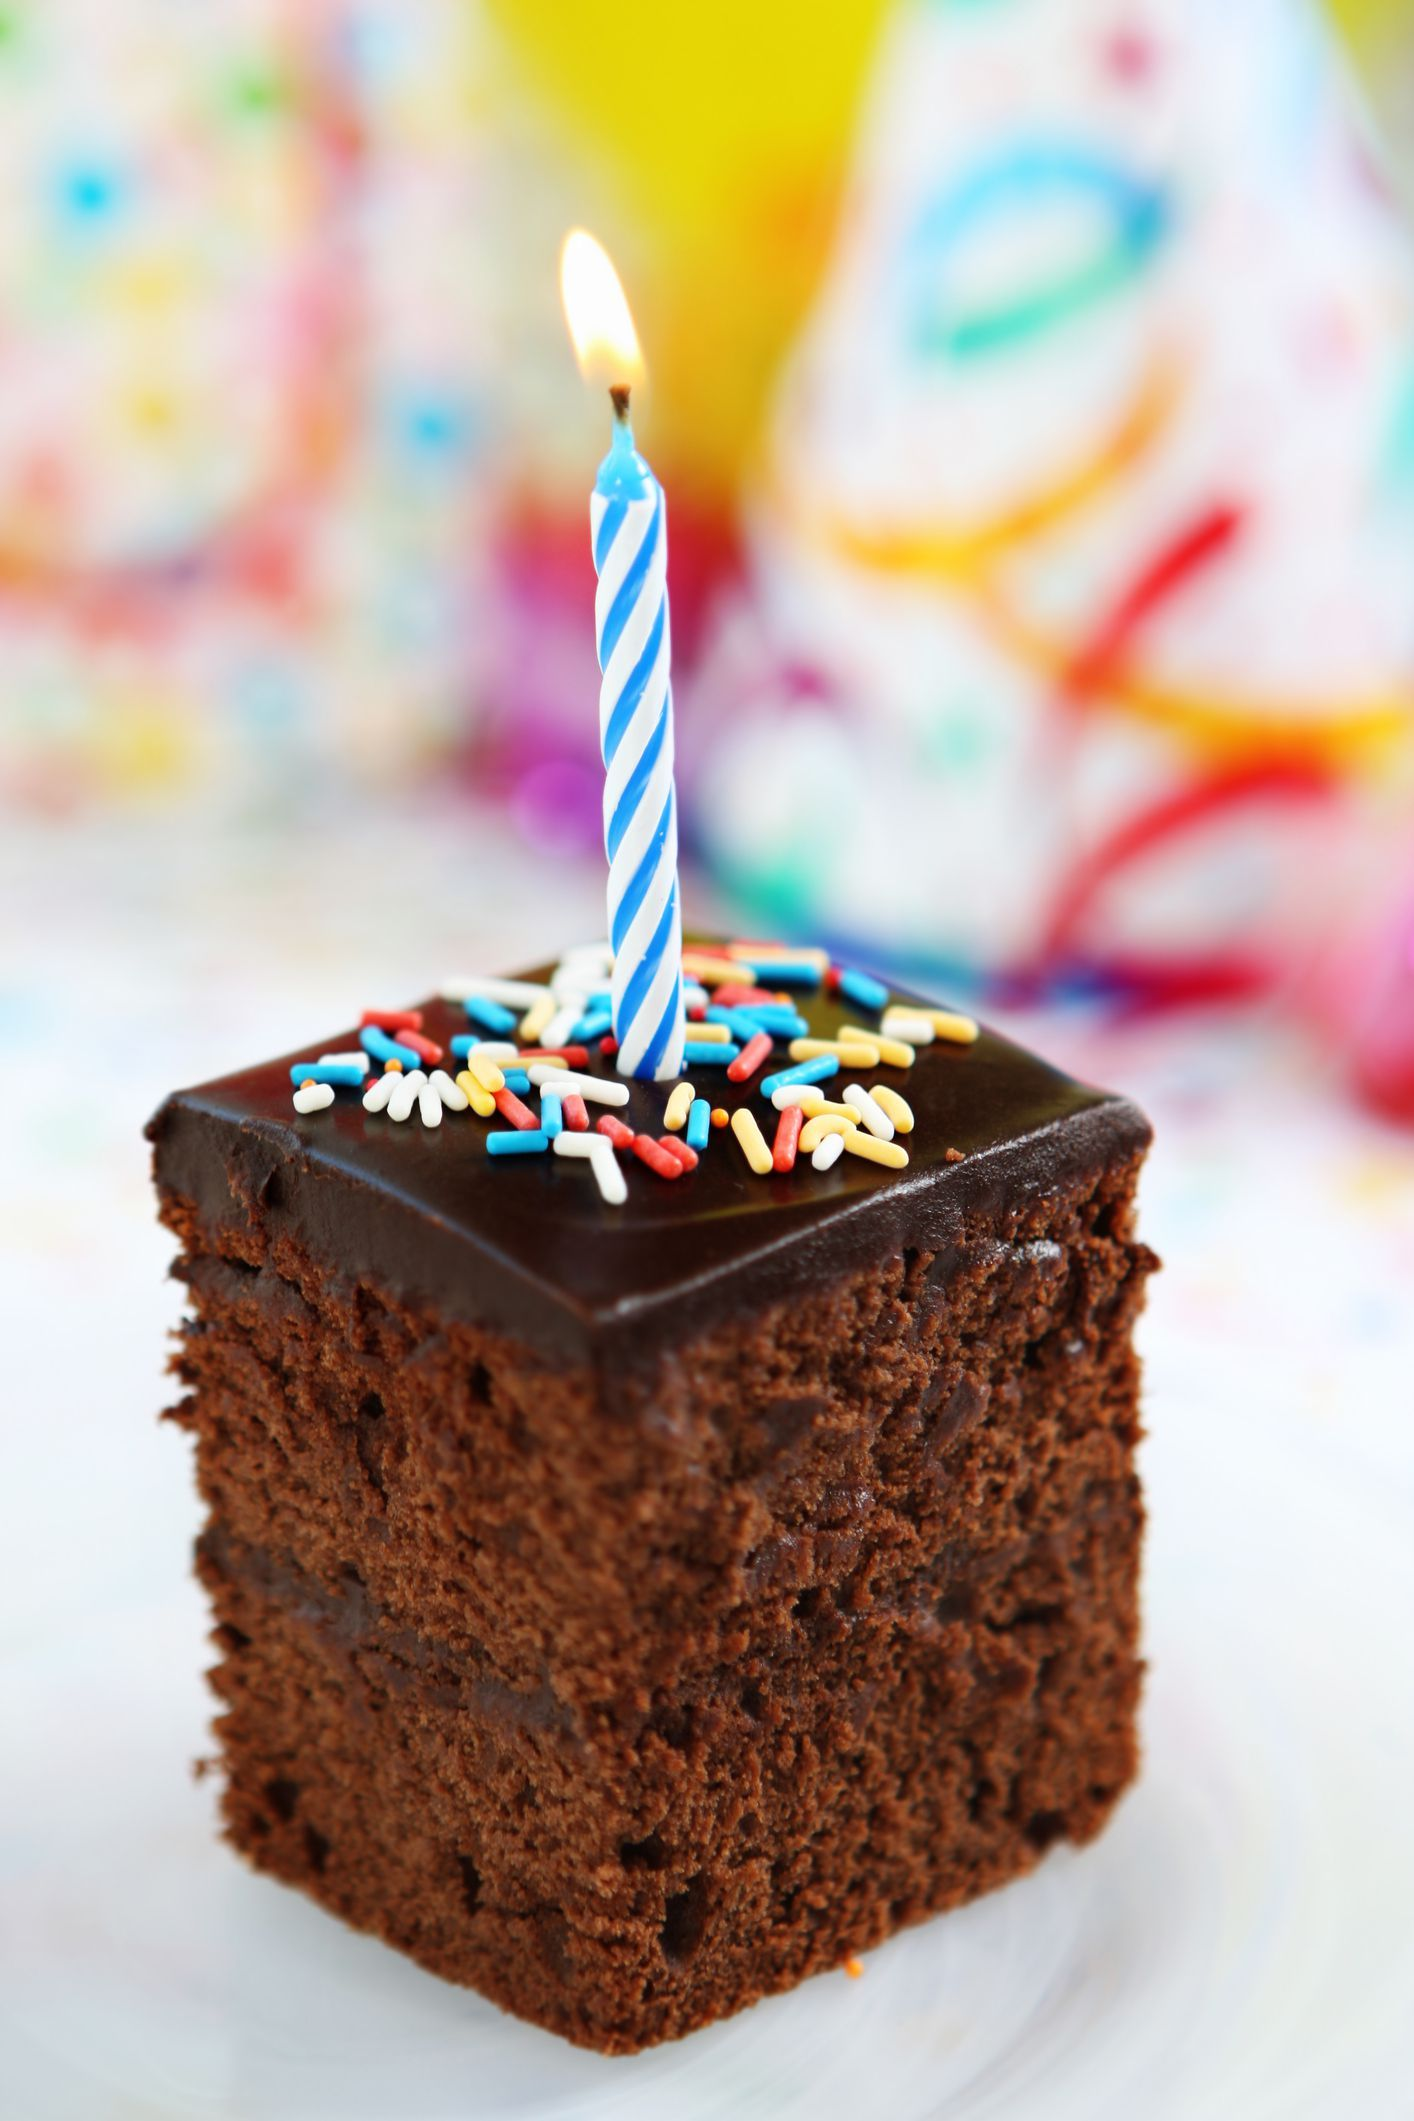 """<p>Celebrating or even congratulating someone on a birthday before the day arrives brings bad luck, at least in <a href=""""https://www.washingtonpost.com/news/worldviews/wp/2017/10/26/whats-a-scary-superstition-in-your-part-of-the-world-share-it-with-us/?utm_term=.e643fcf5cffc"""" target=""""_blank"""">Russia</a> that is. </p>"""